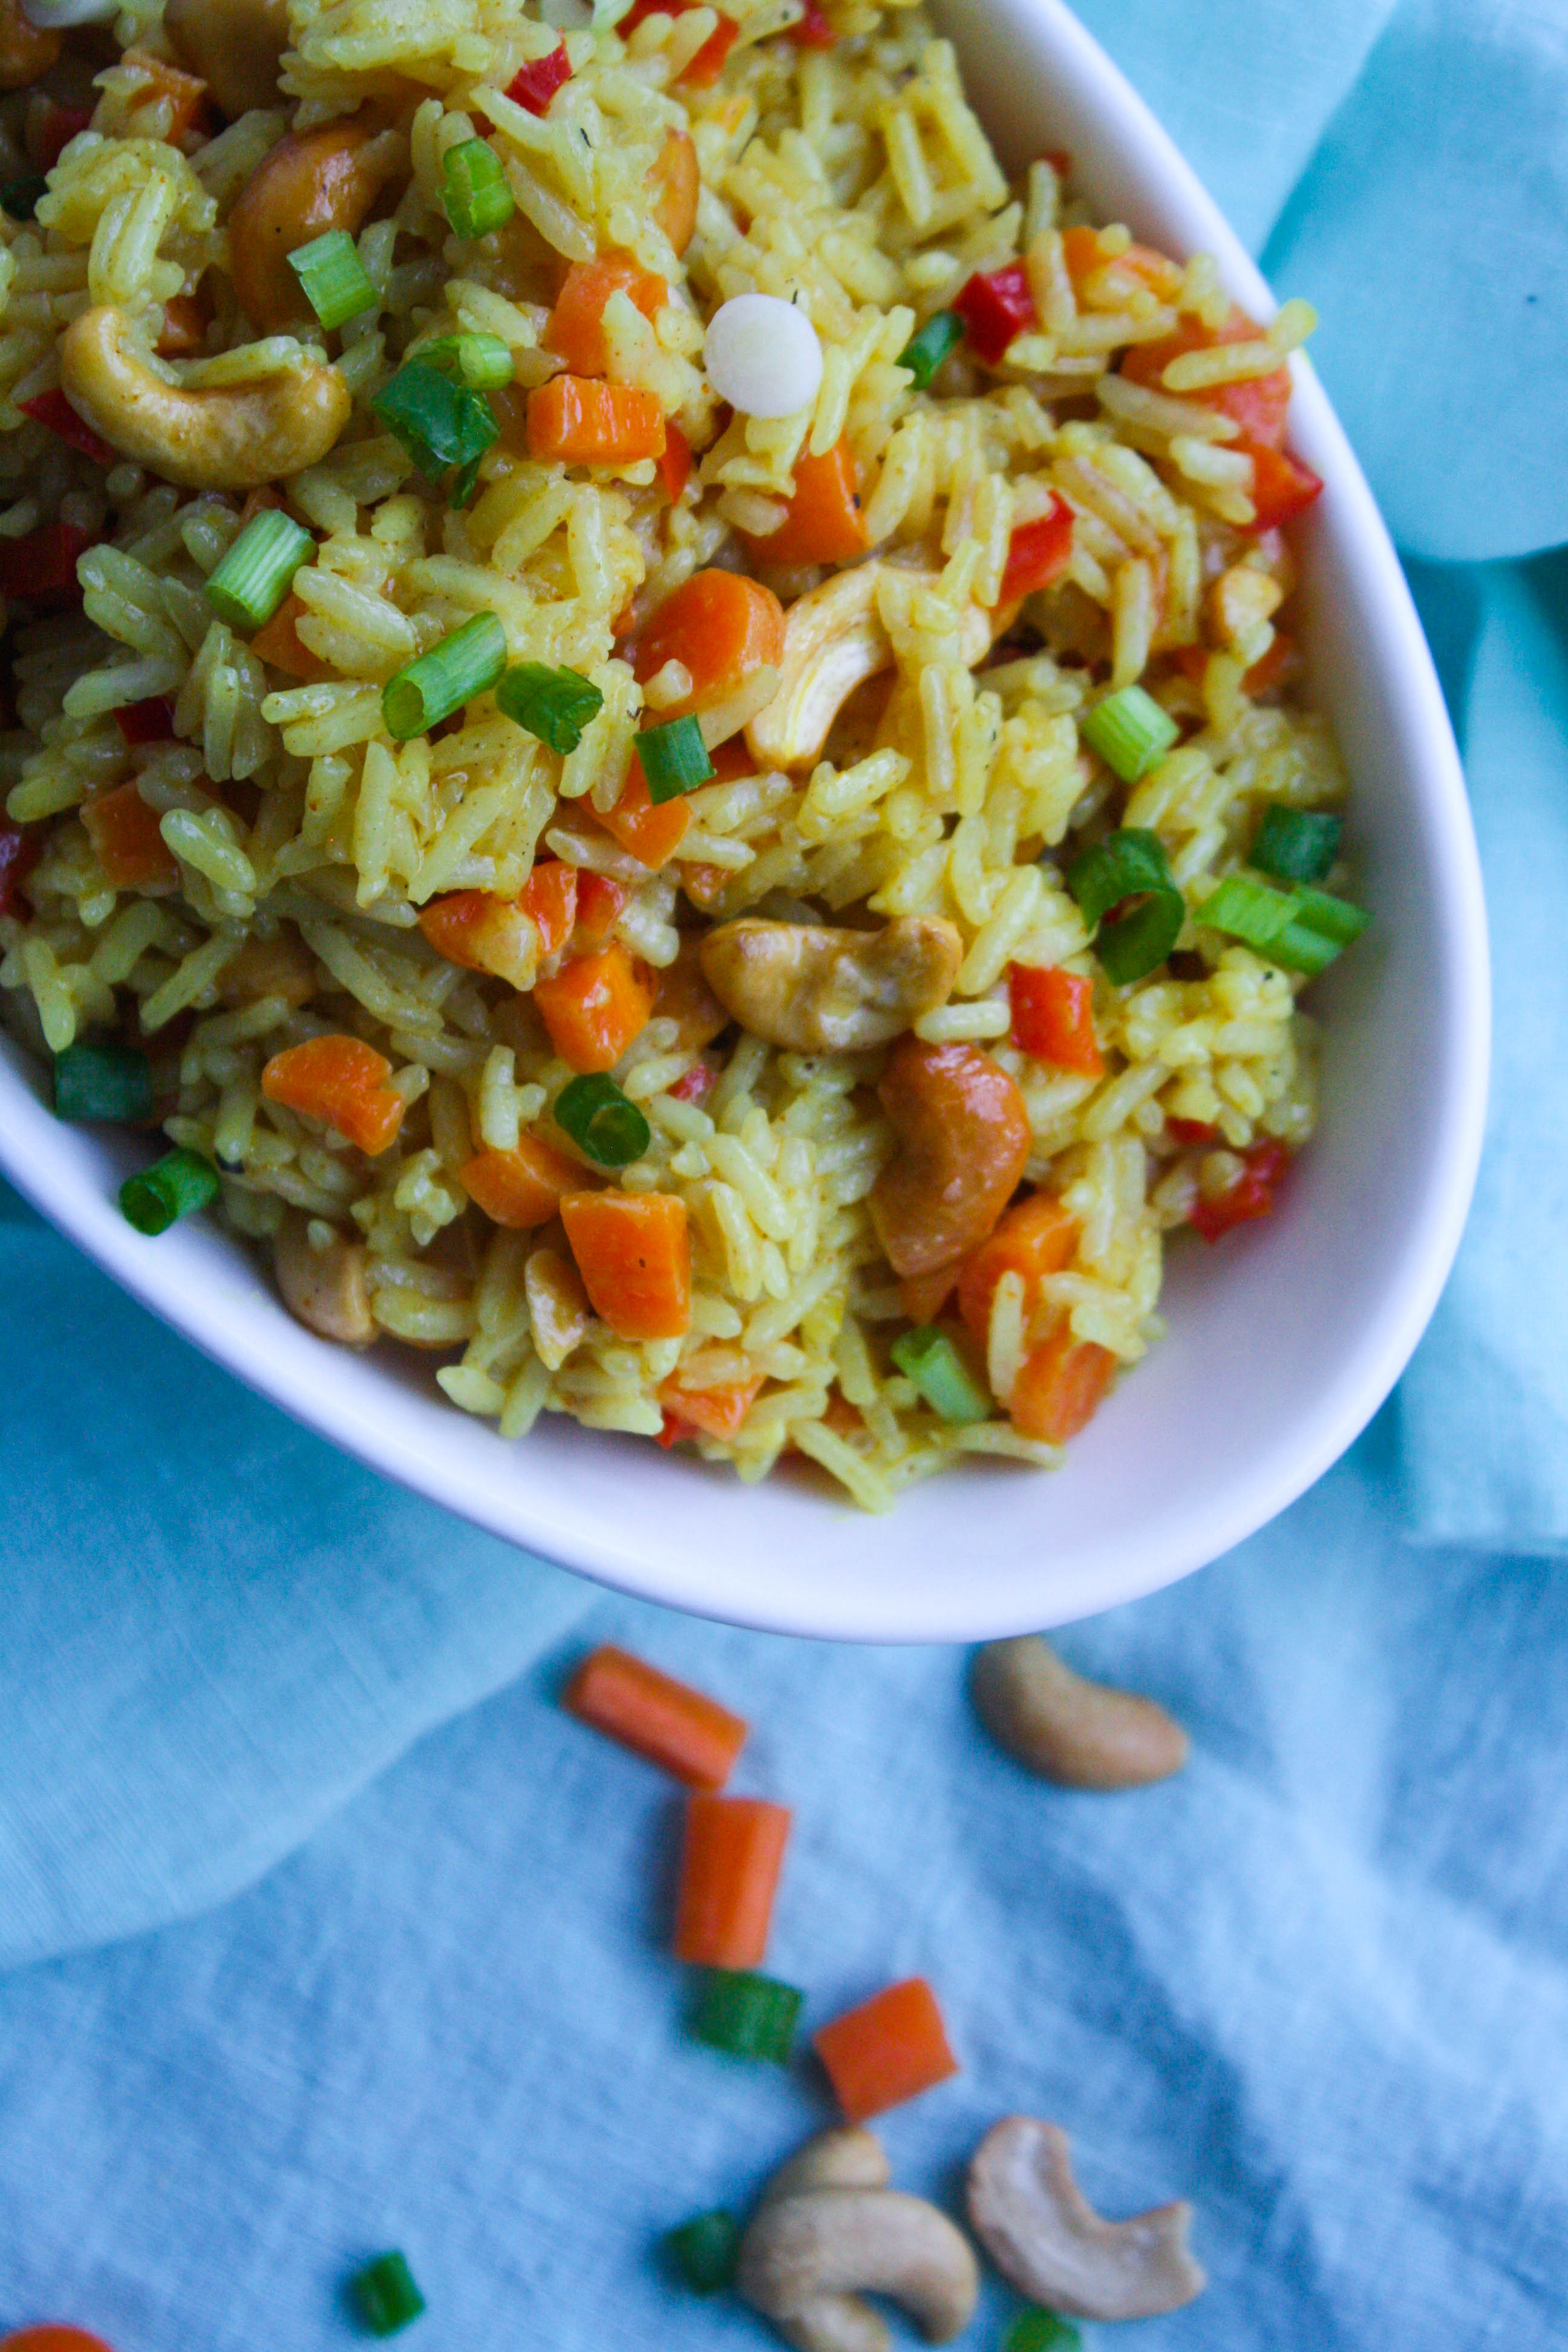 Coconut Carrot and Cashew Rice Pilaf is a fabulous and flavorful side dish. You'll love how easy this rice pilaf is to make, too!